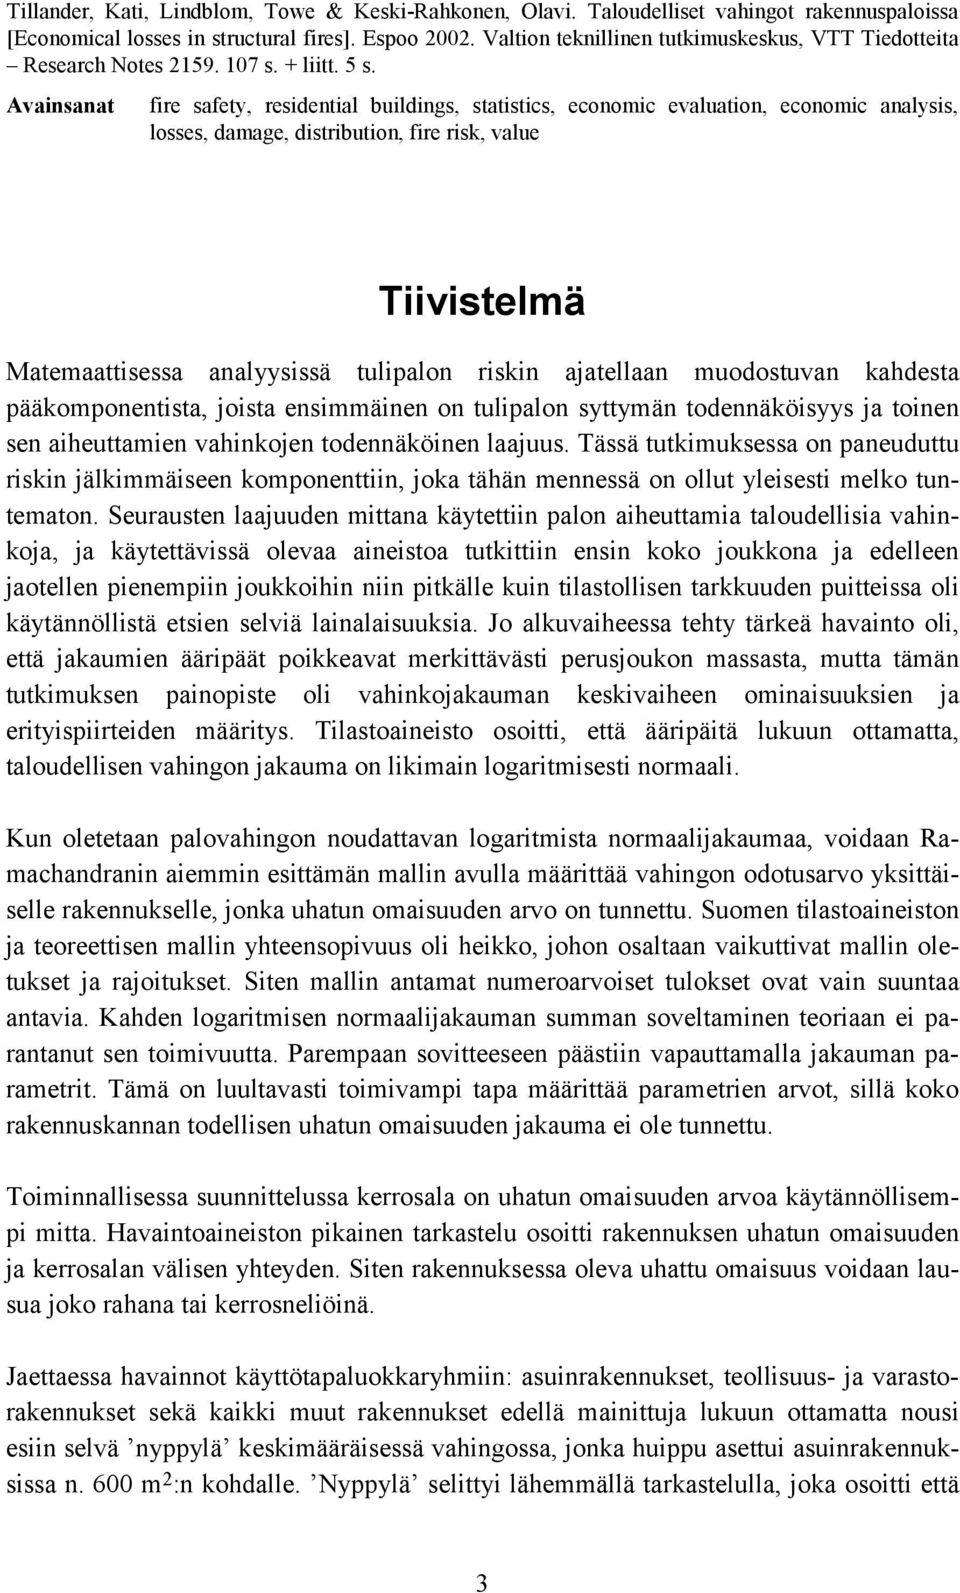 Avainsanat fire safety, residential buildings, statistics, economic evaluation, economic analysis, losses, damage, distribution, fire risk, value Tiivistelmä Matemaattisessa analyysissä tulipalon